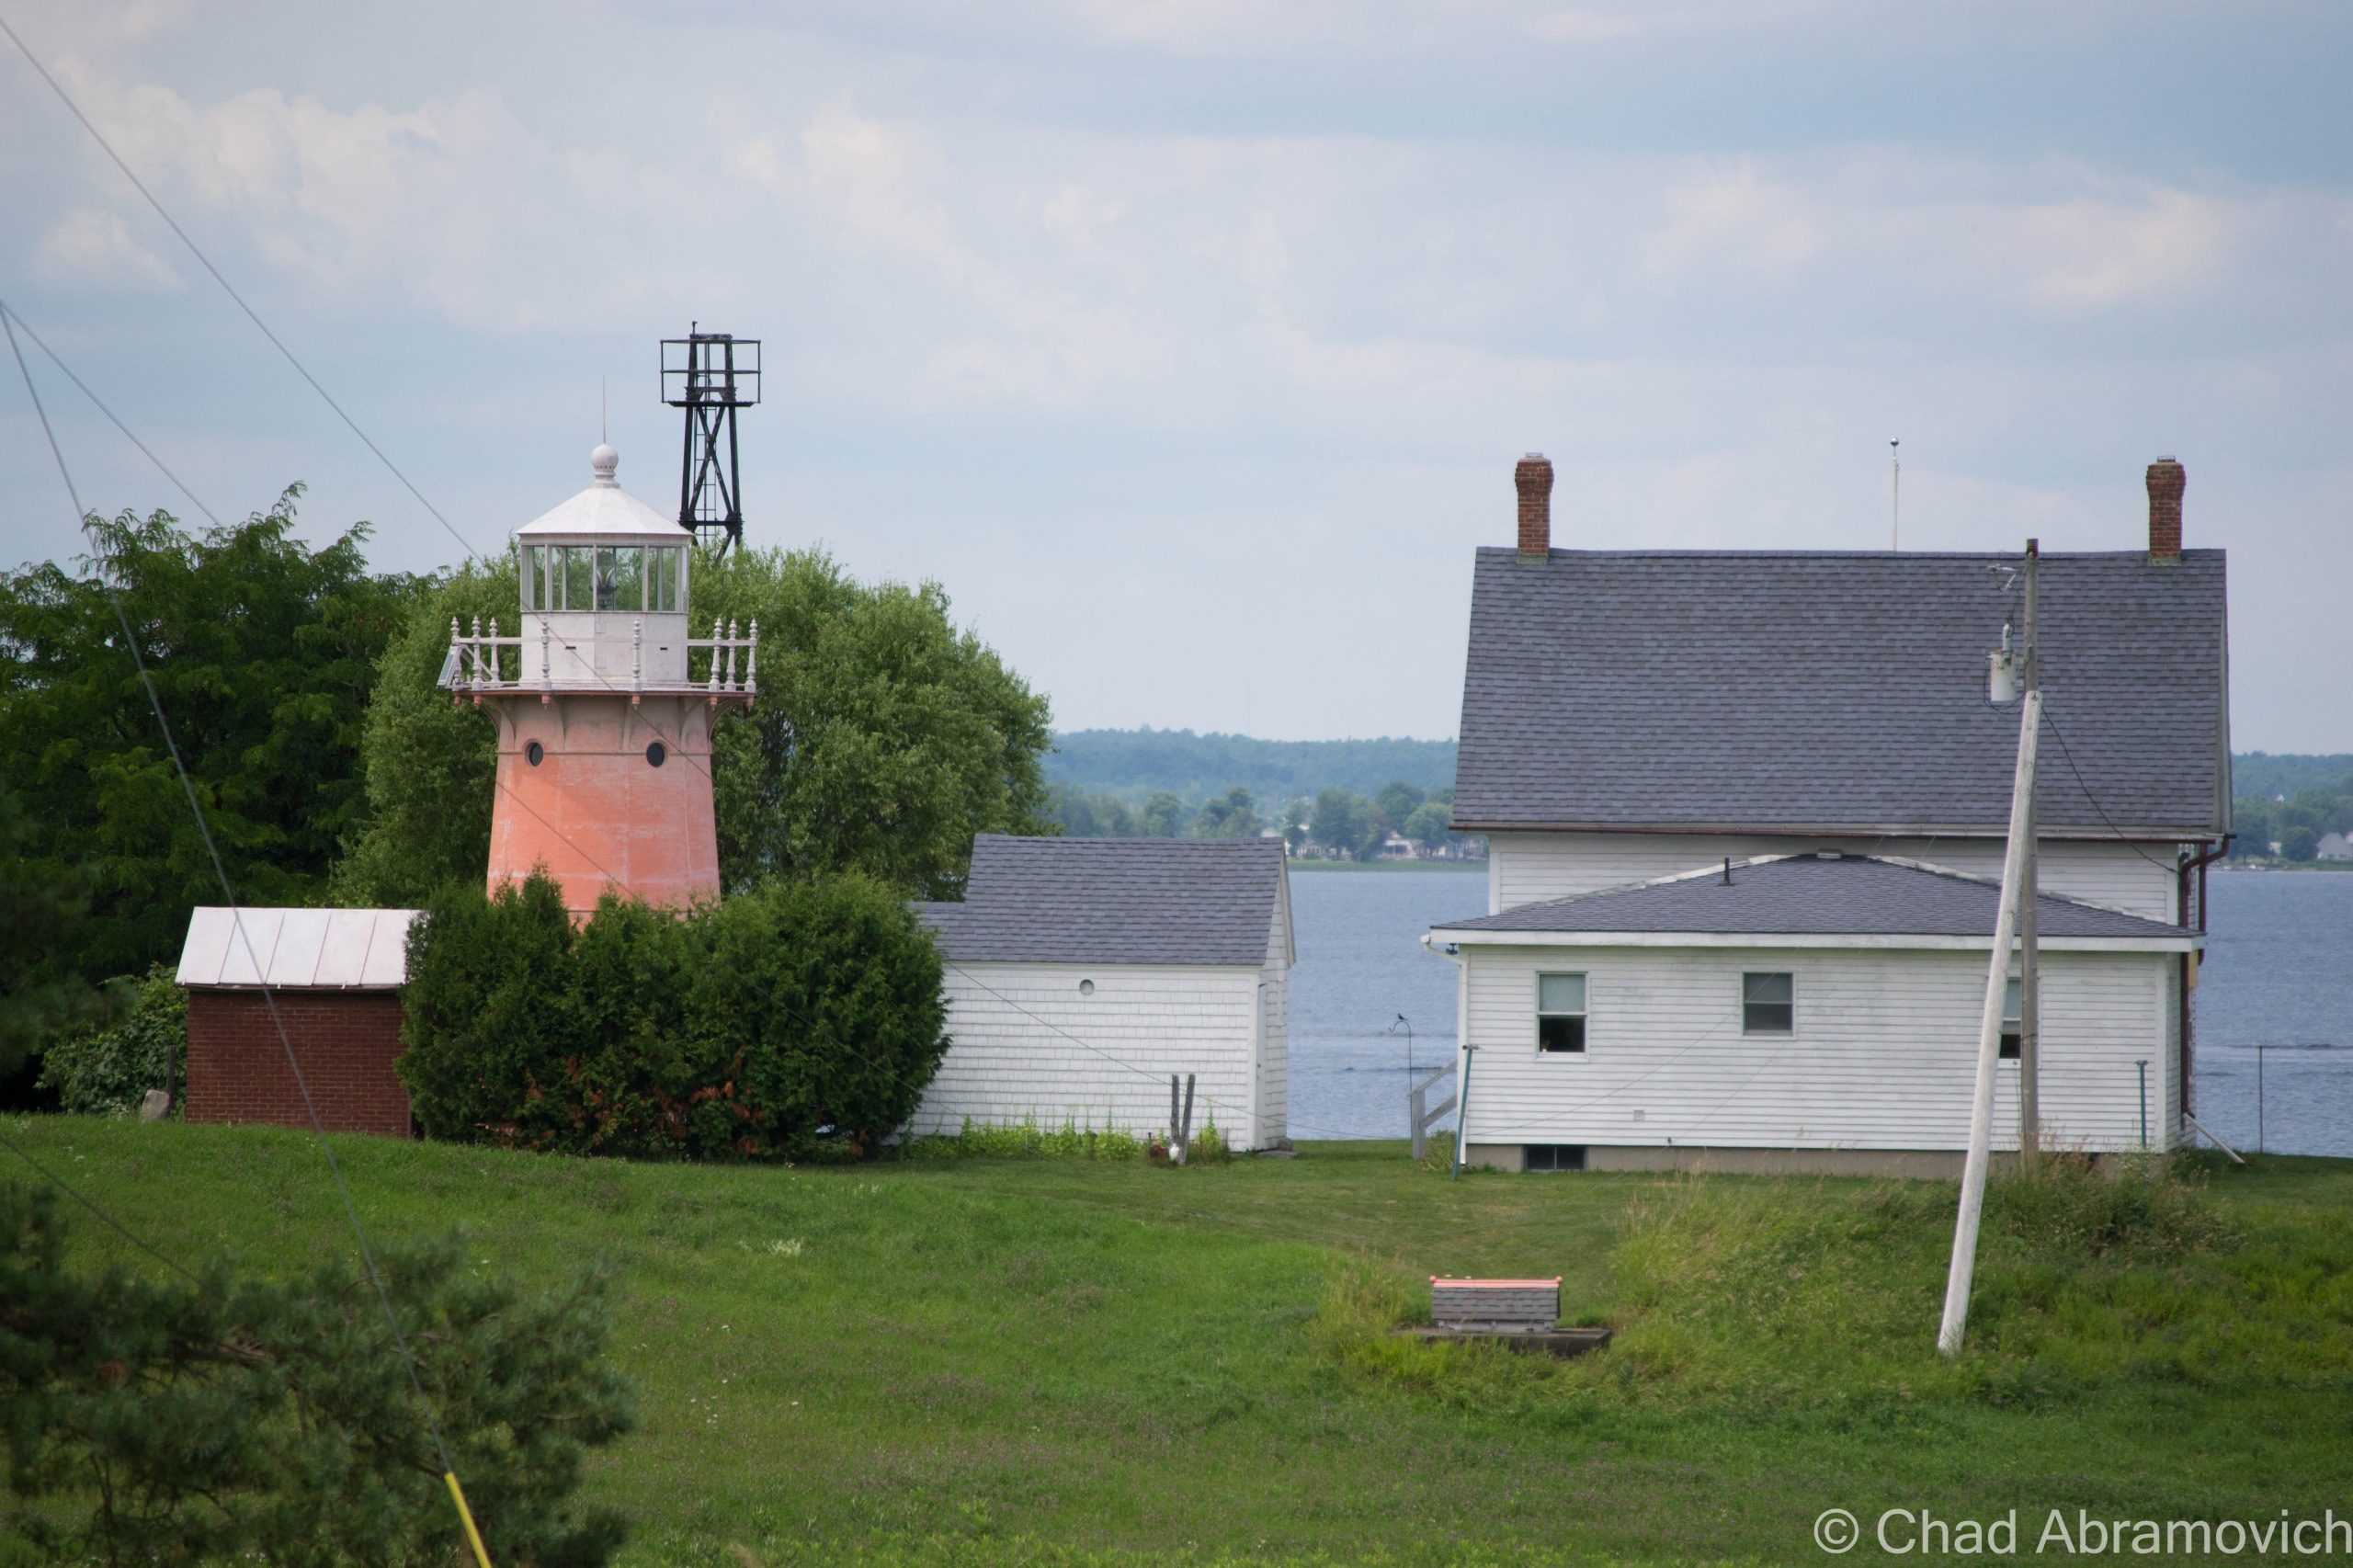 Isle La Motte's Lighthouse, as seen from North Point Road - the best place to get a good view of it, unless you have a boat or a kayak.